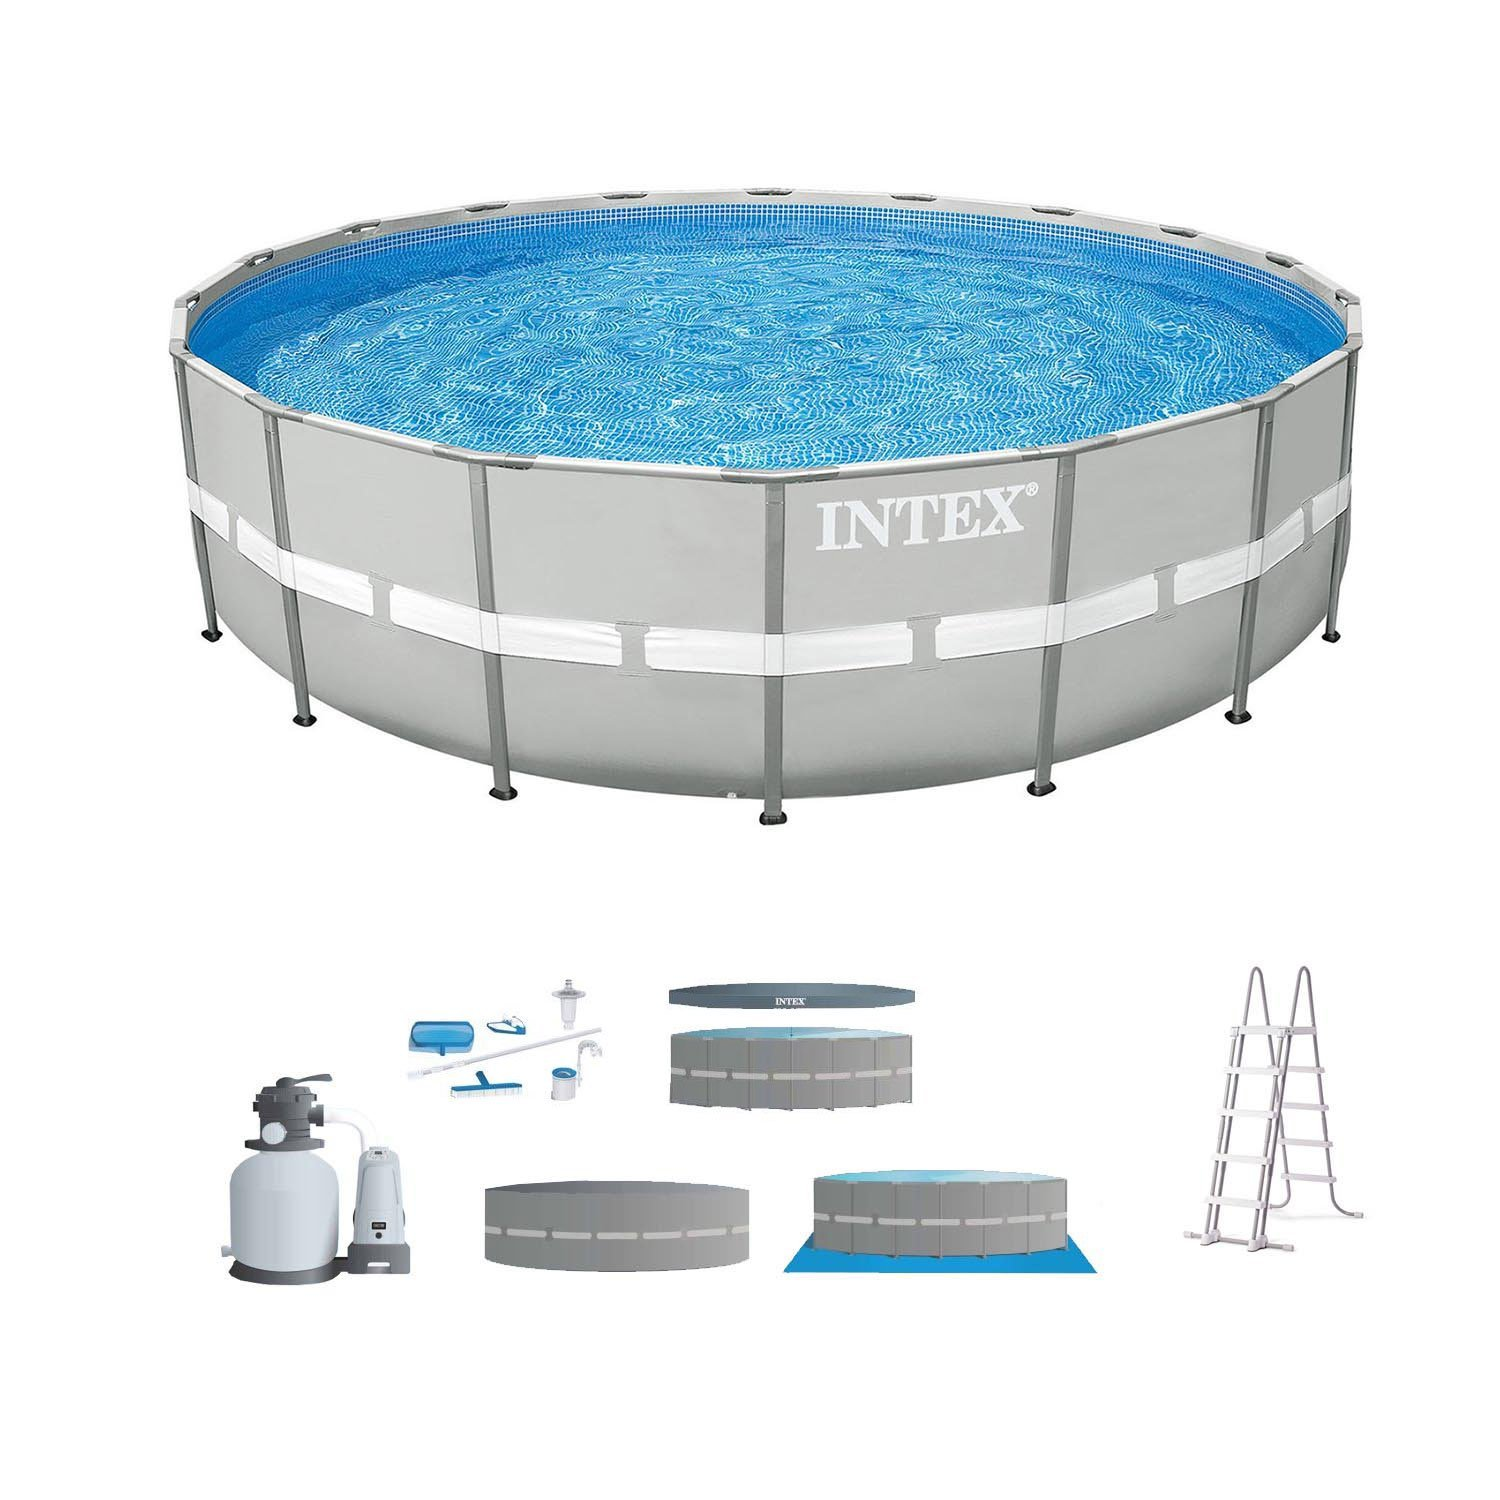 Intex 24 39 x 52 steel ultra frame round above ground swimming pool set with pump whole pools for Round swimming pools above ground